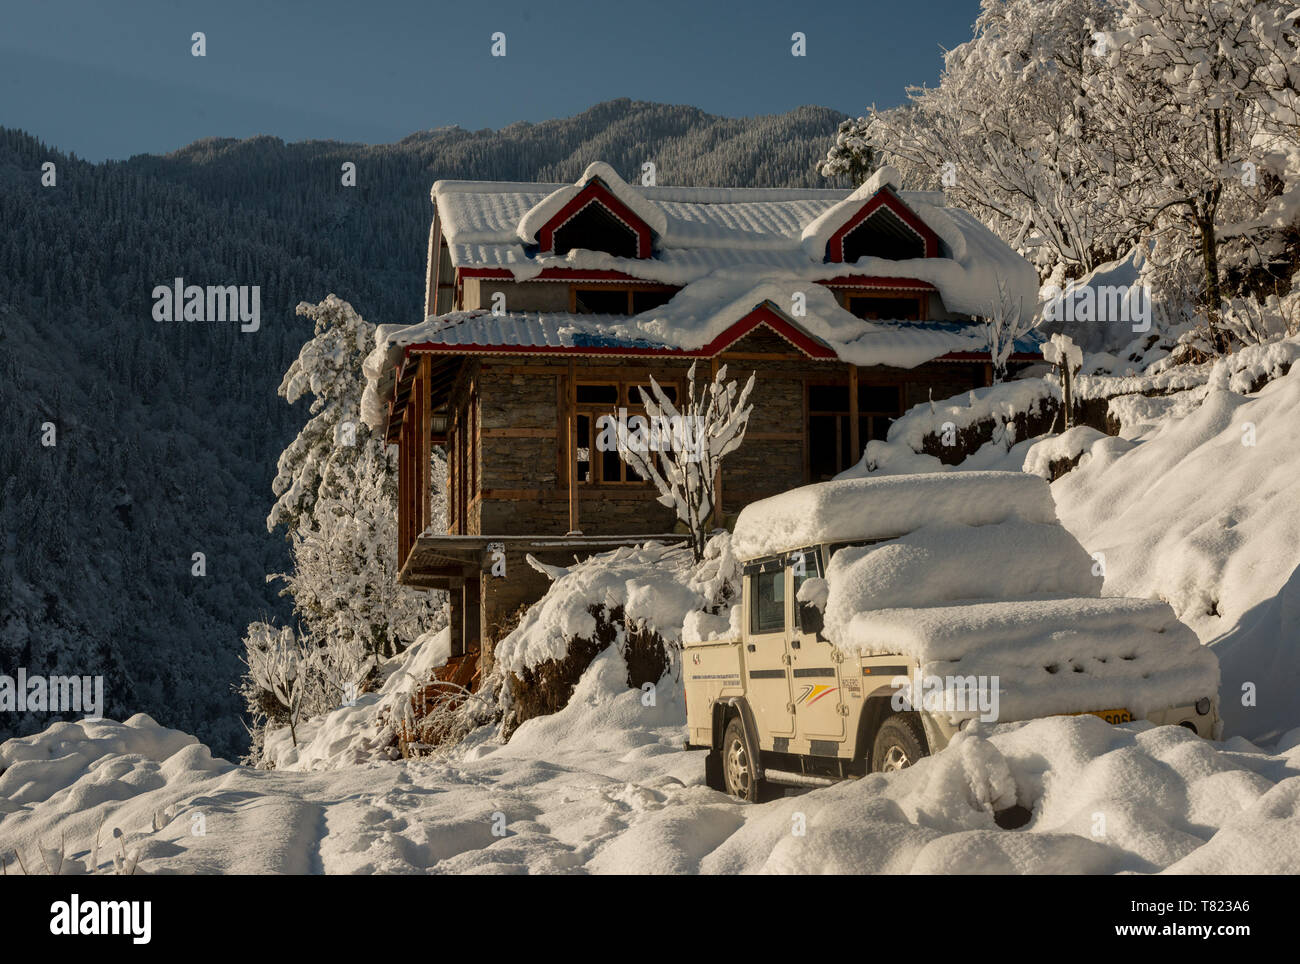 Kullu, Himachal Pradesh, India - February 08, 2019 : Snow covered wooden house in mountains - Majestic winter landscape in himalayas - - Stock Image